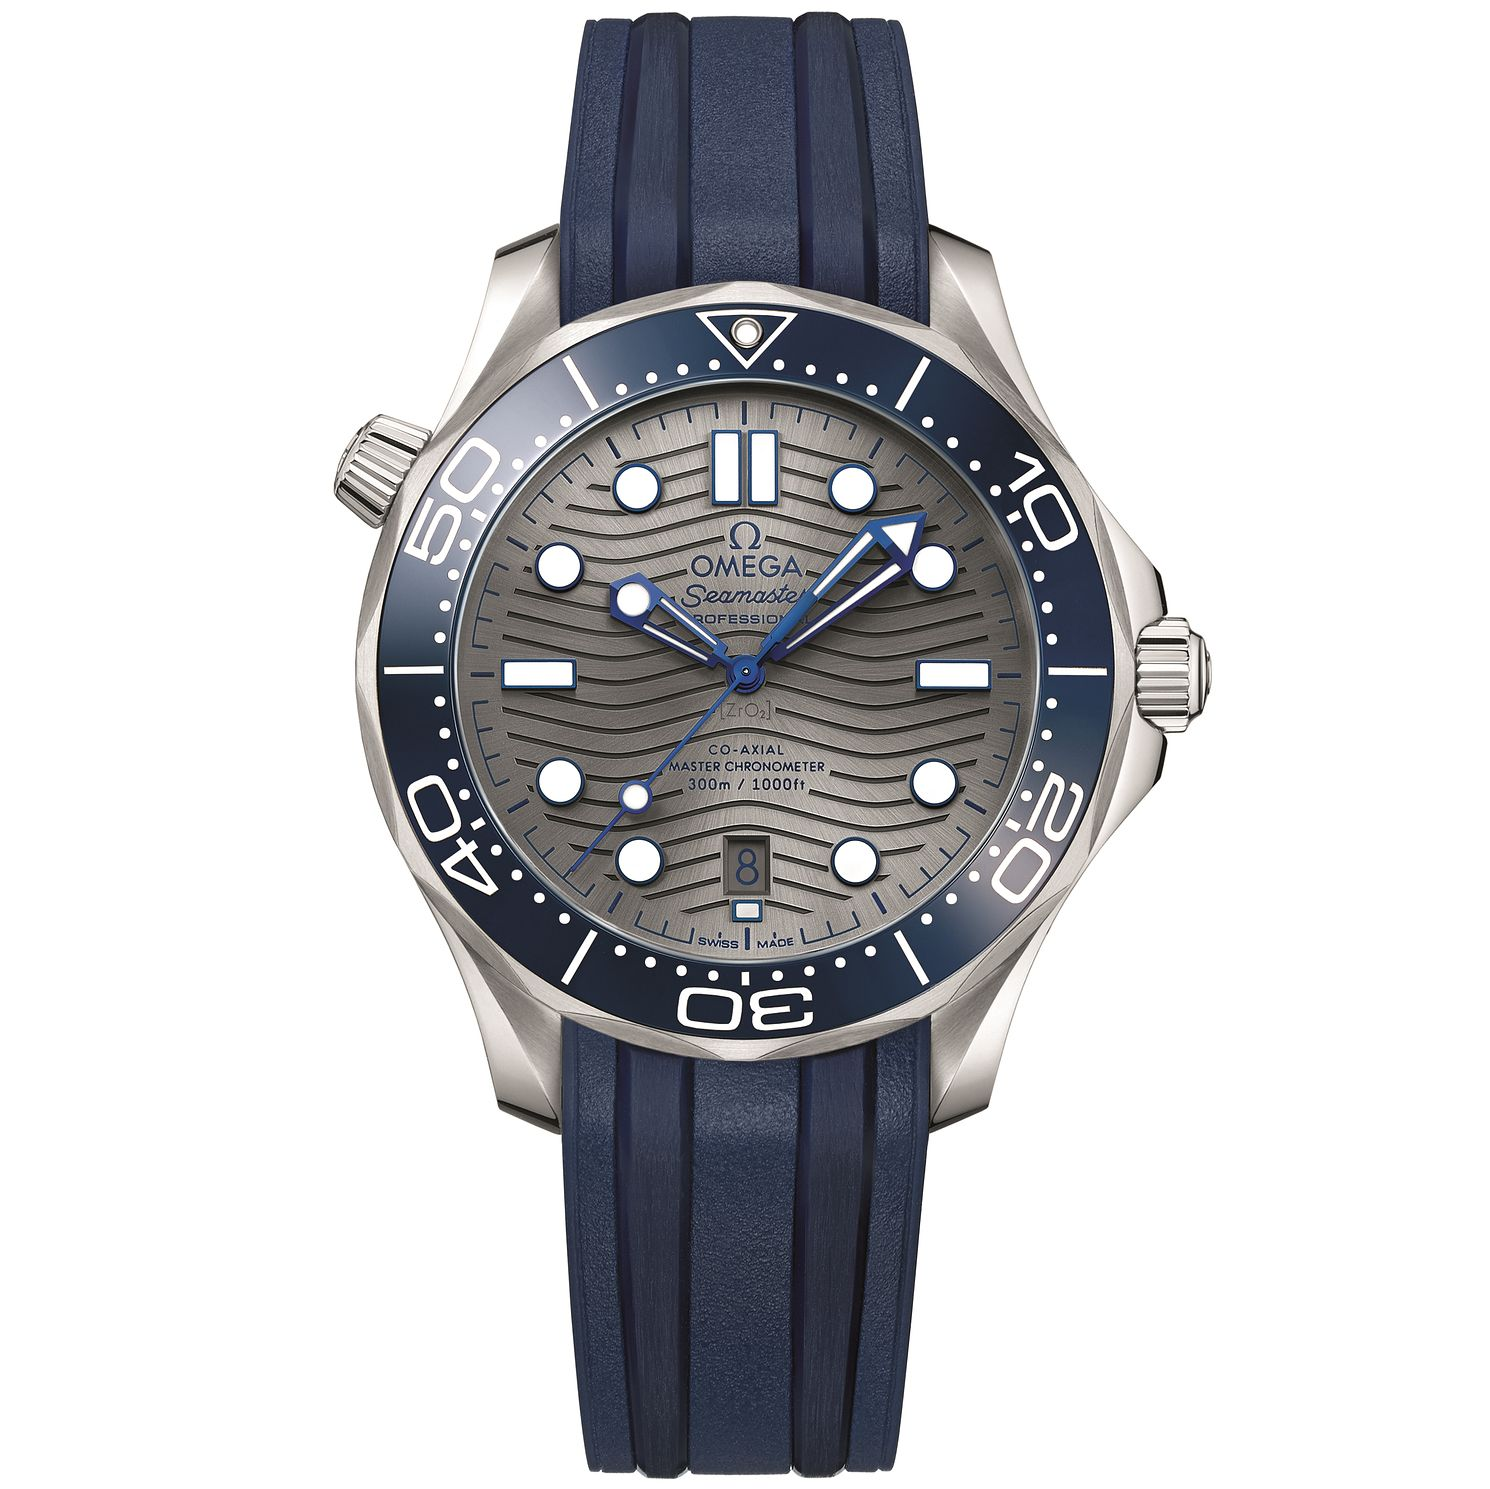 Omega Seamaster Diver Men's Blue Rubber Strap Watch - Product number 1185896